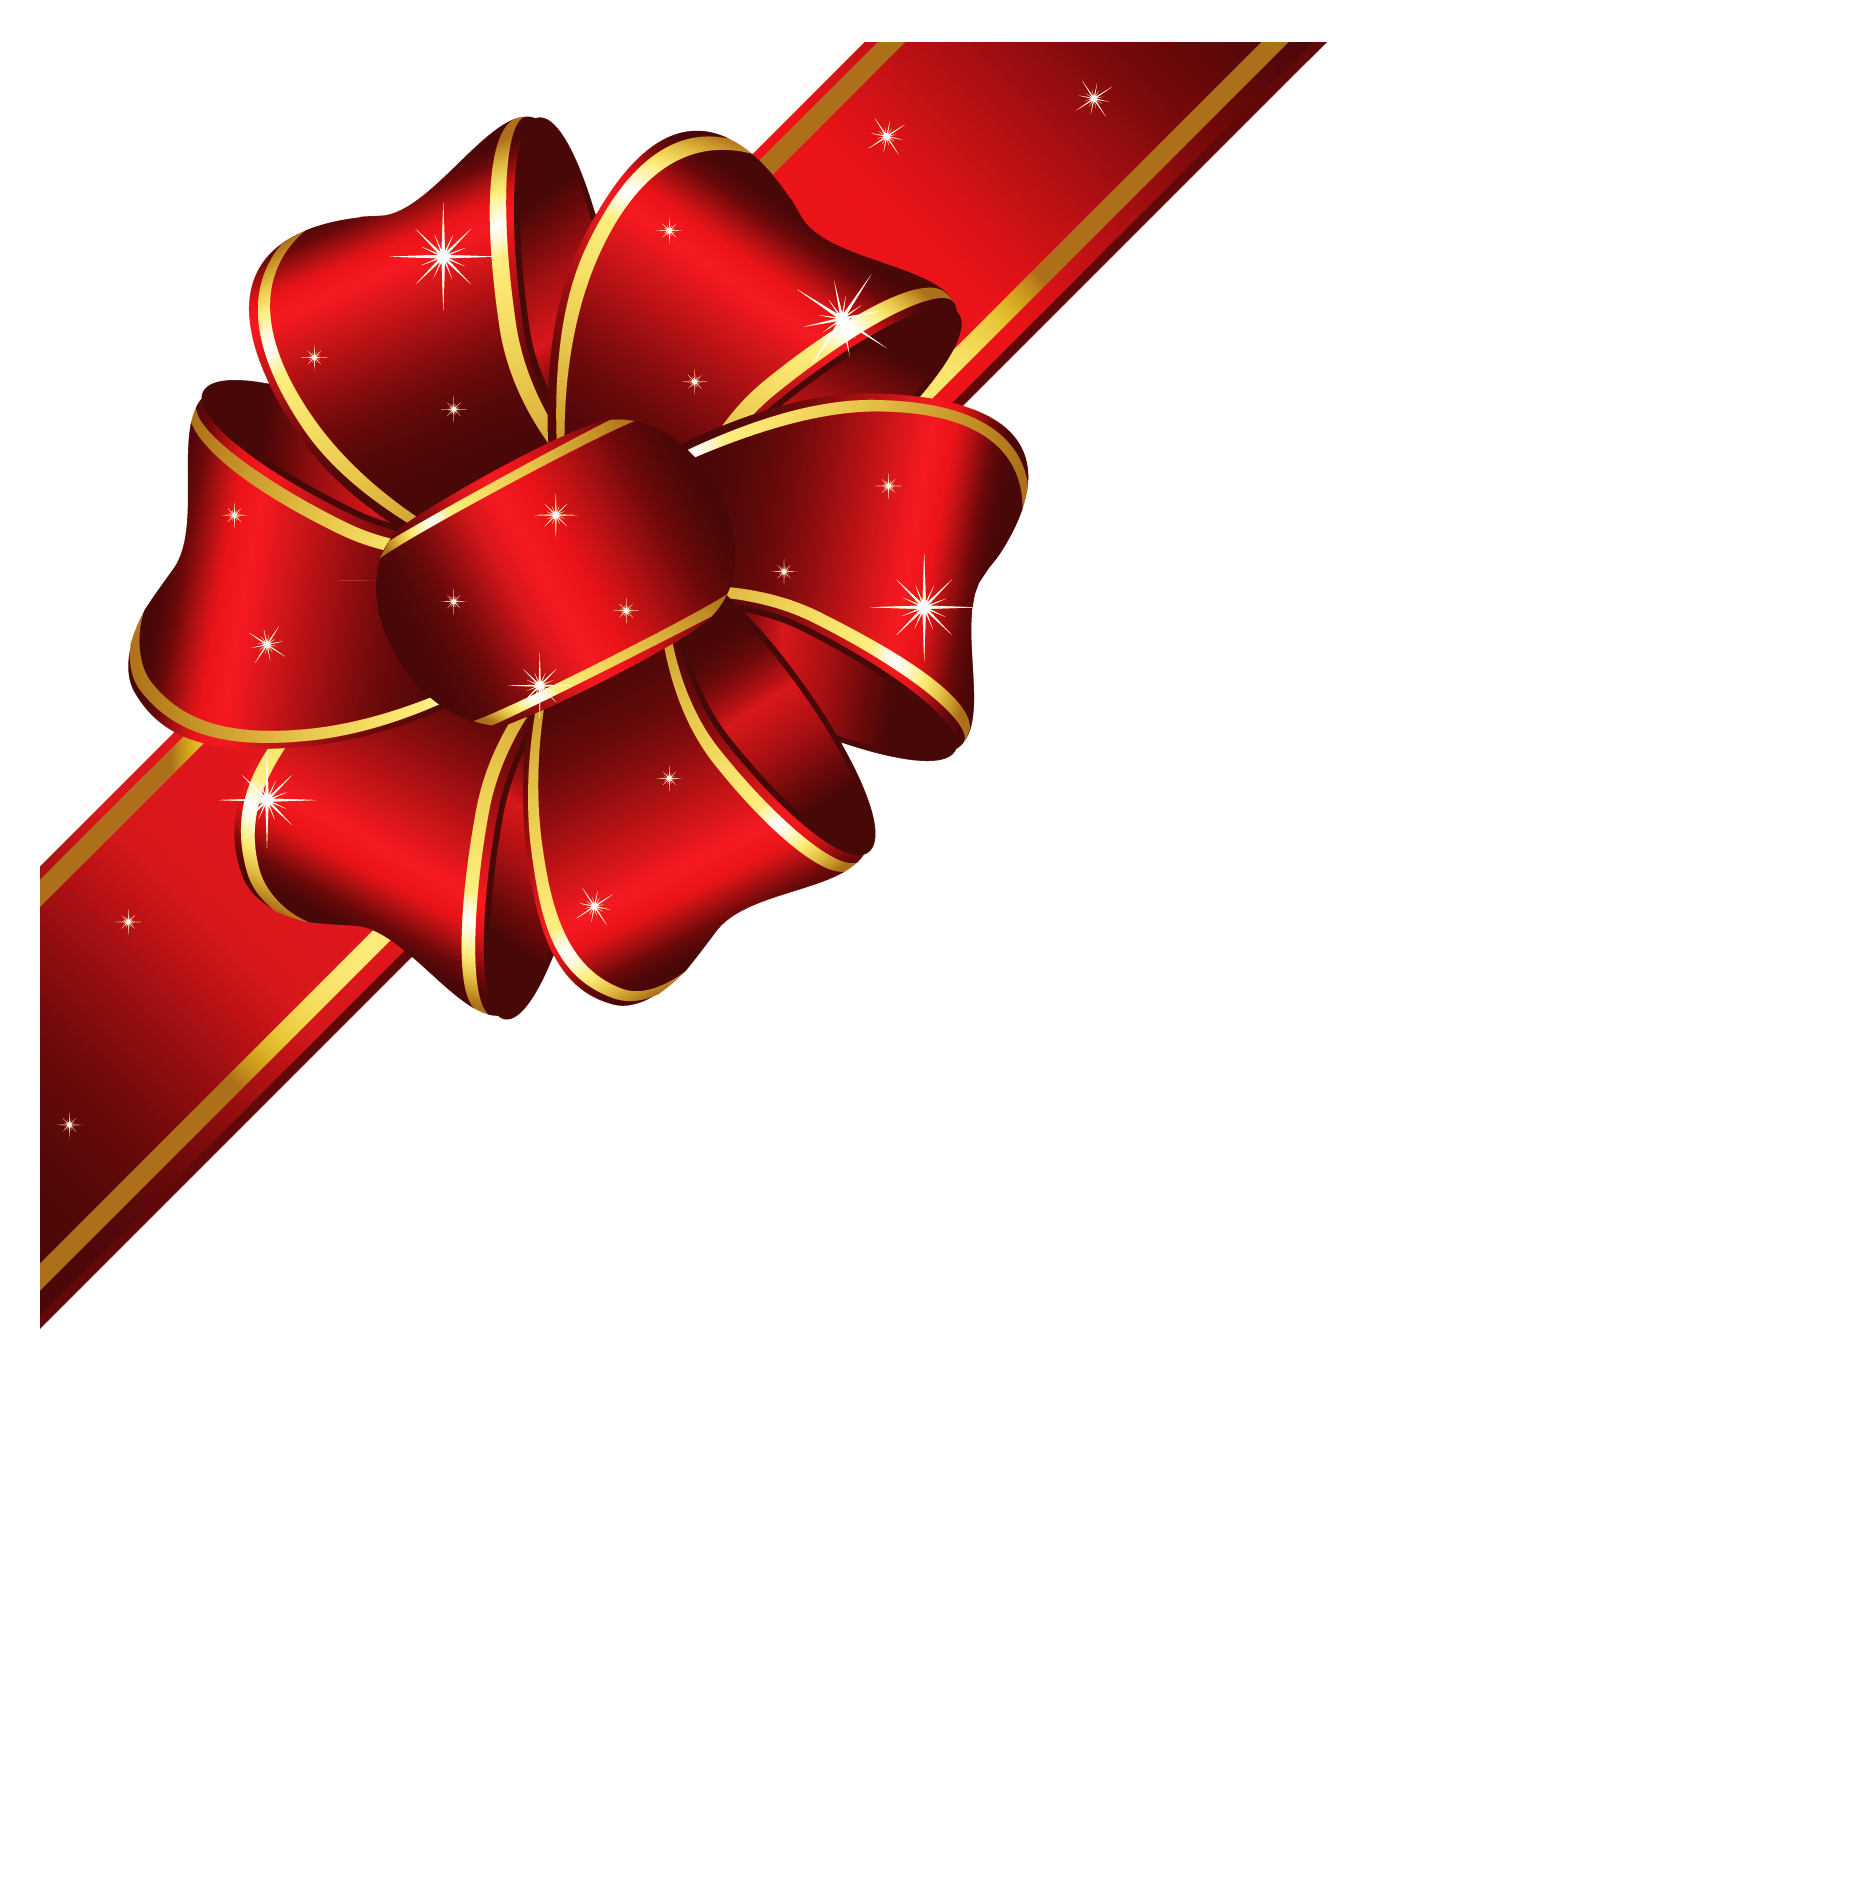 Red Bow with Gold Edging Transparent PNG Image   Gallery ...   Christmas Clipart Ribbons And Bows